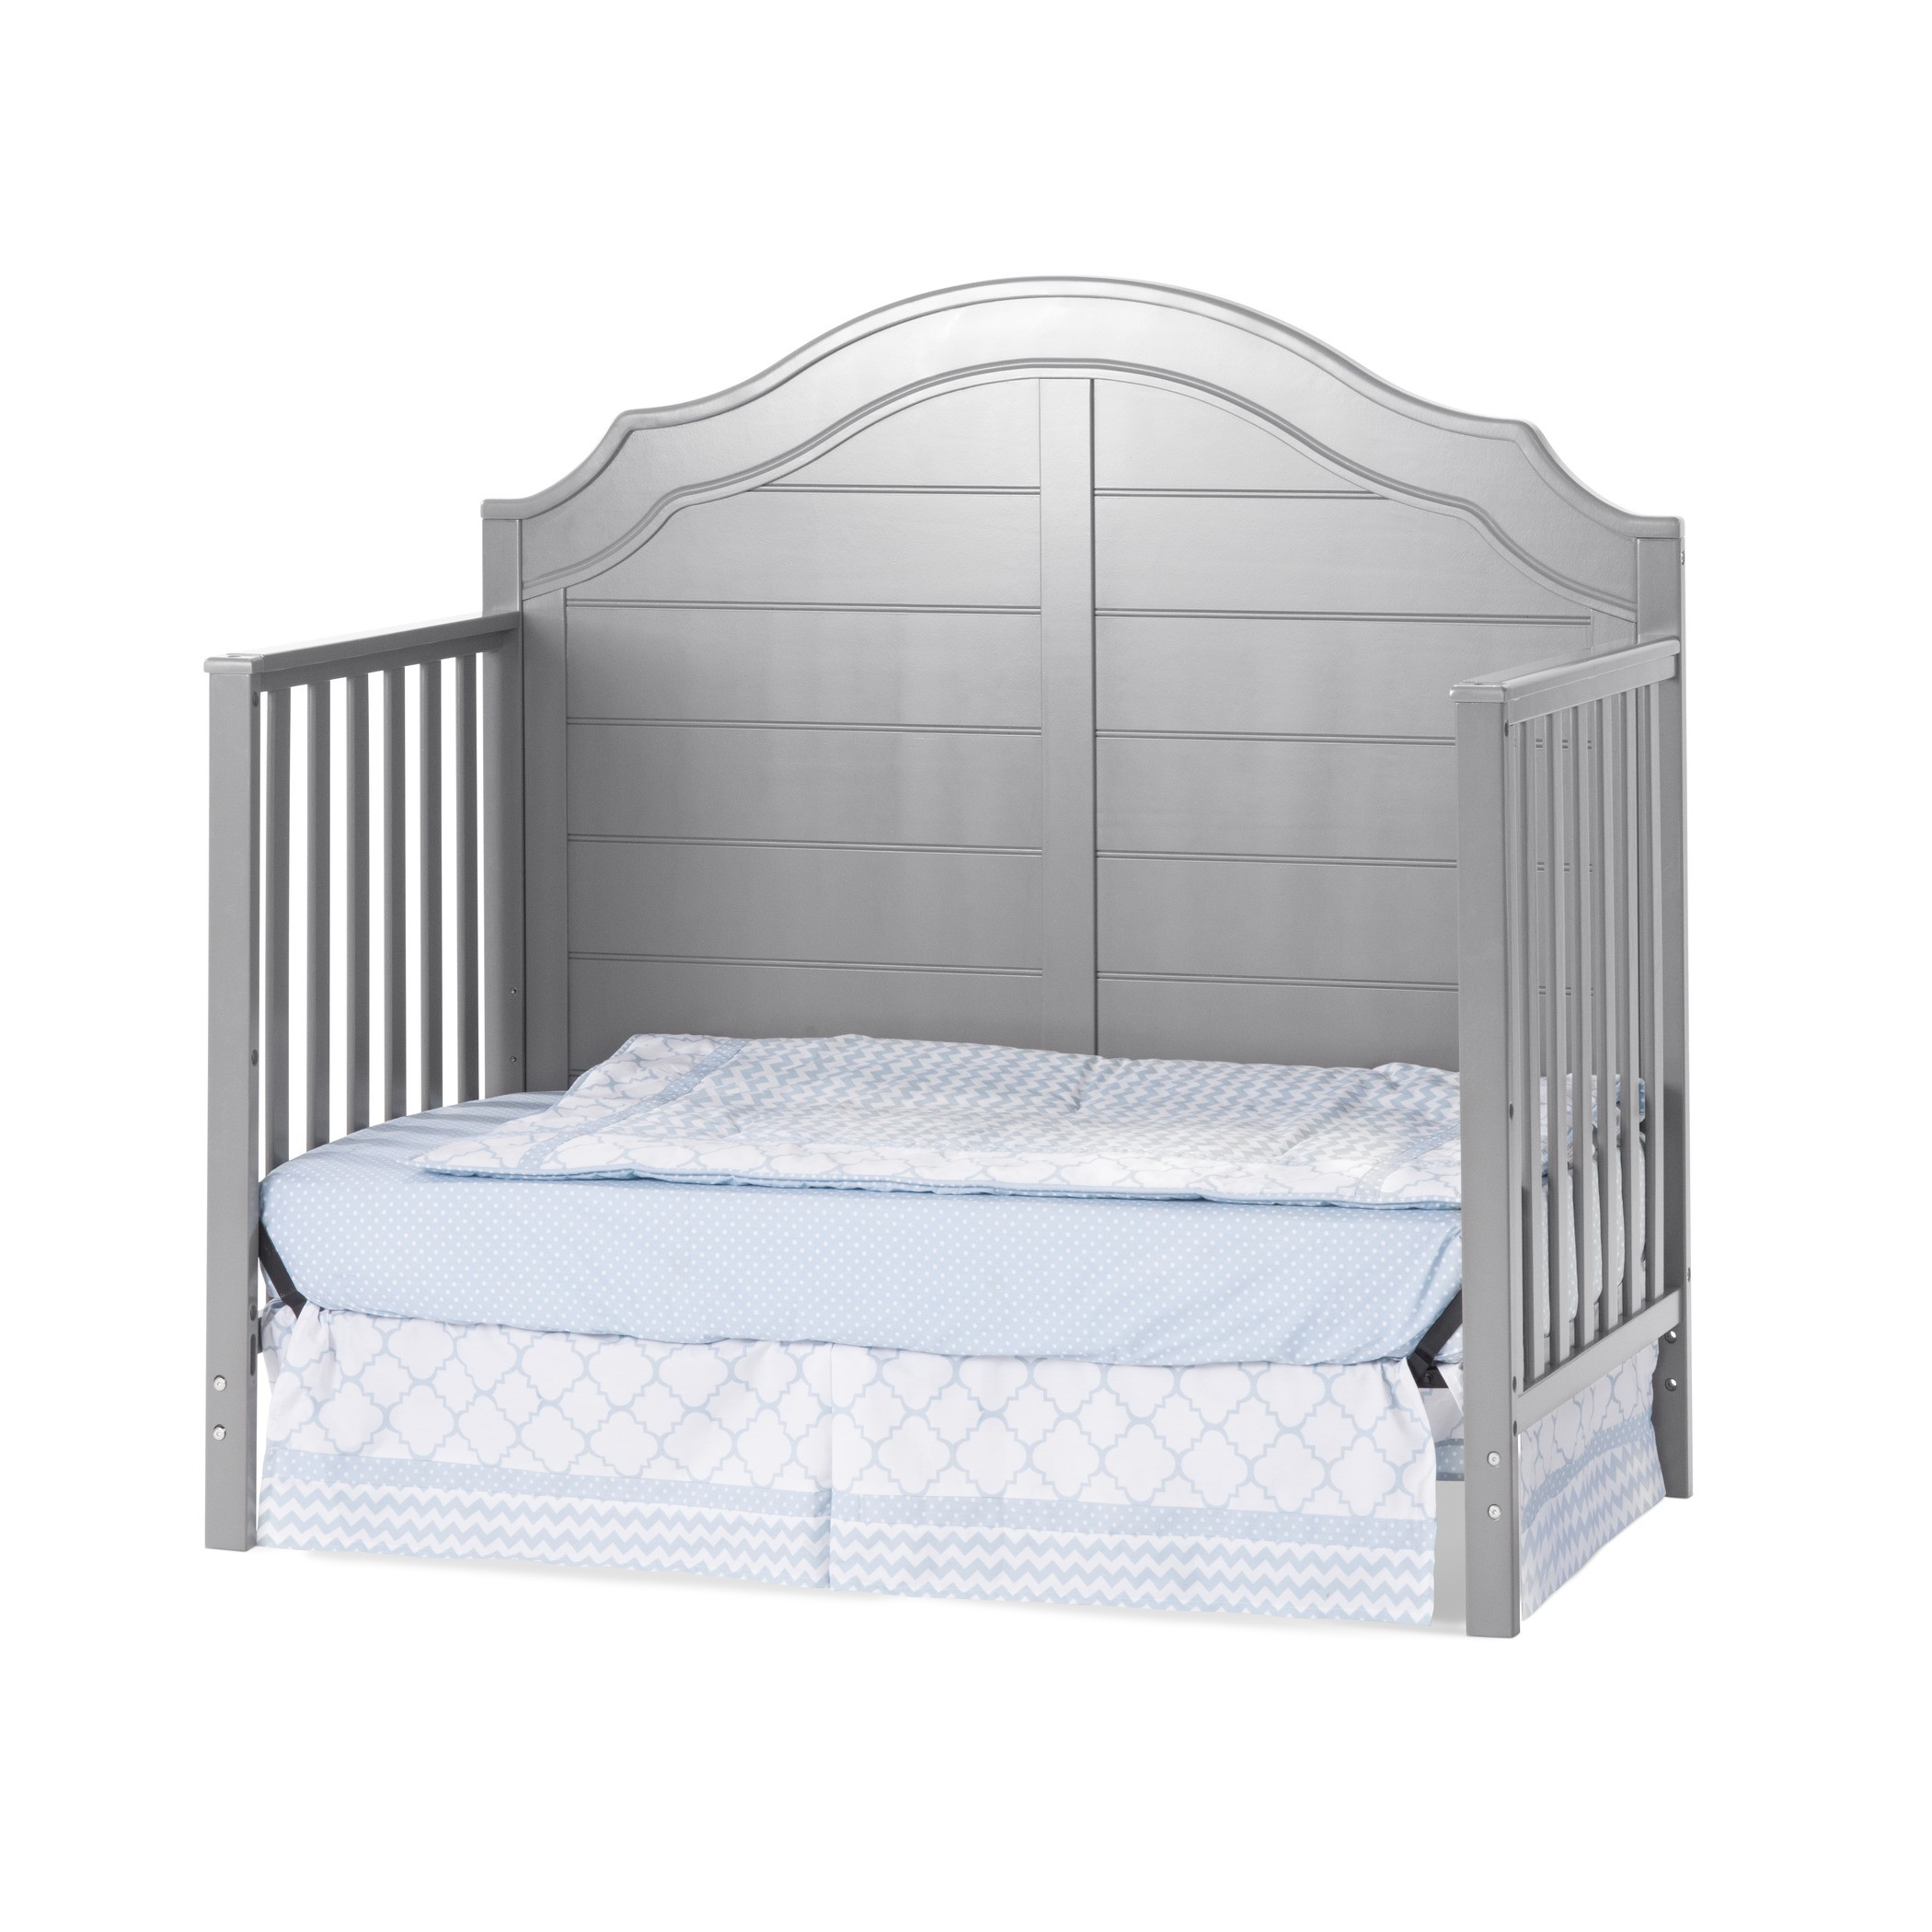 Penelope 4-in-1 Convertible Crib | Child Craft